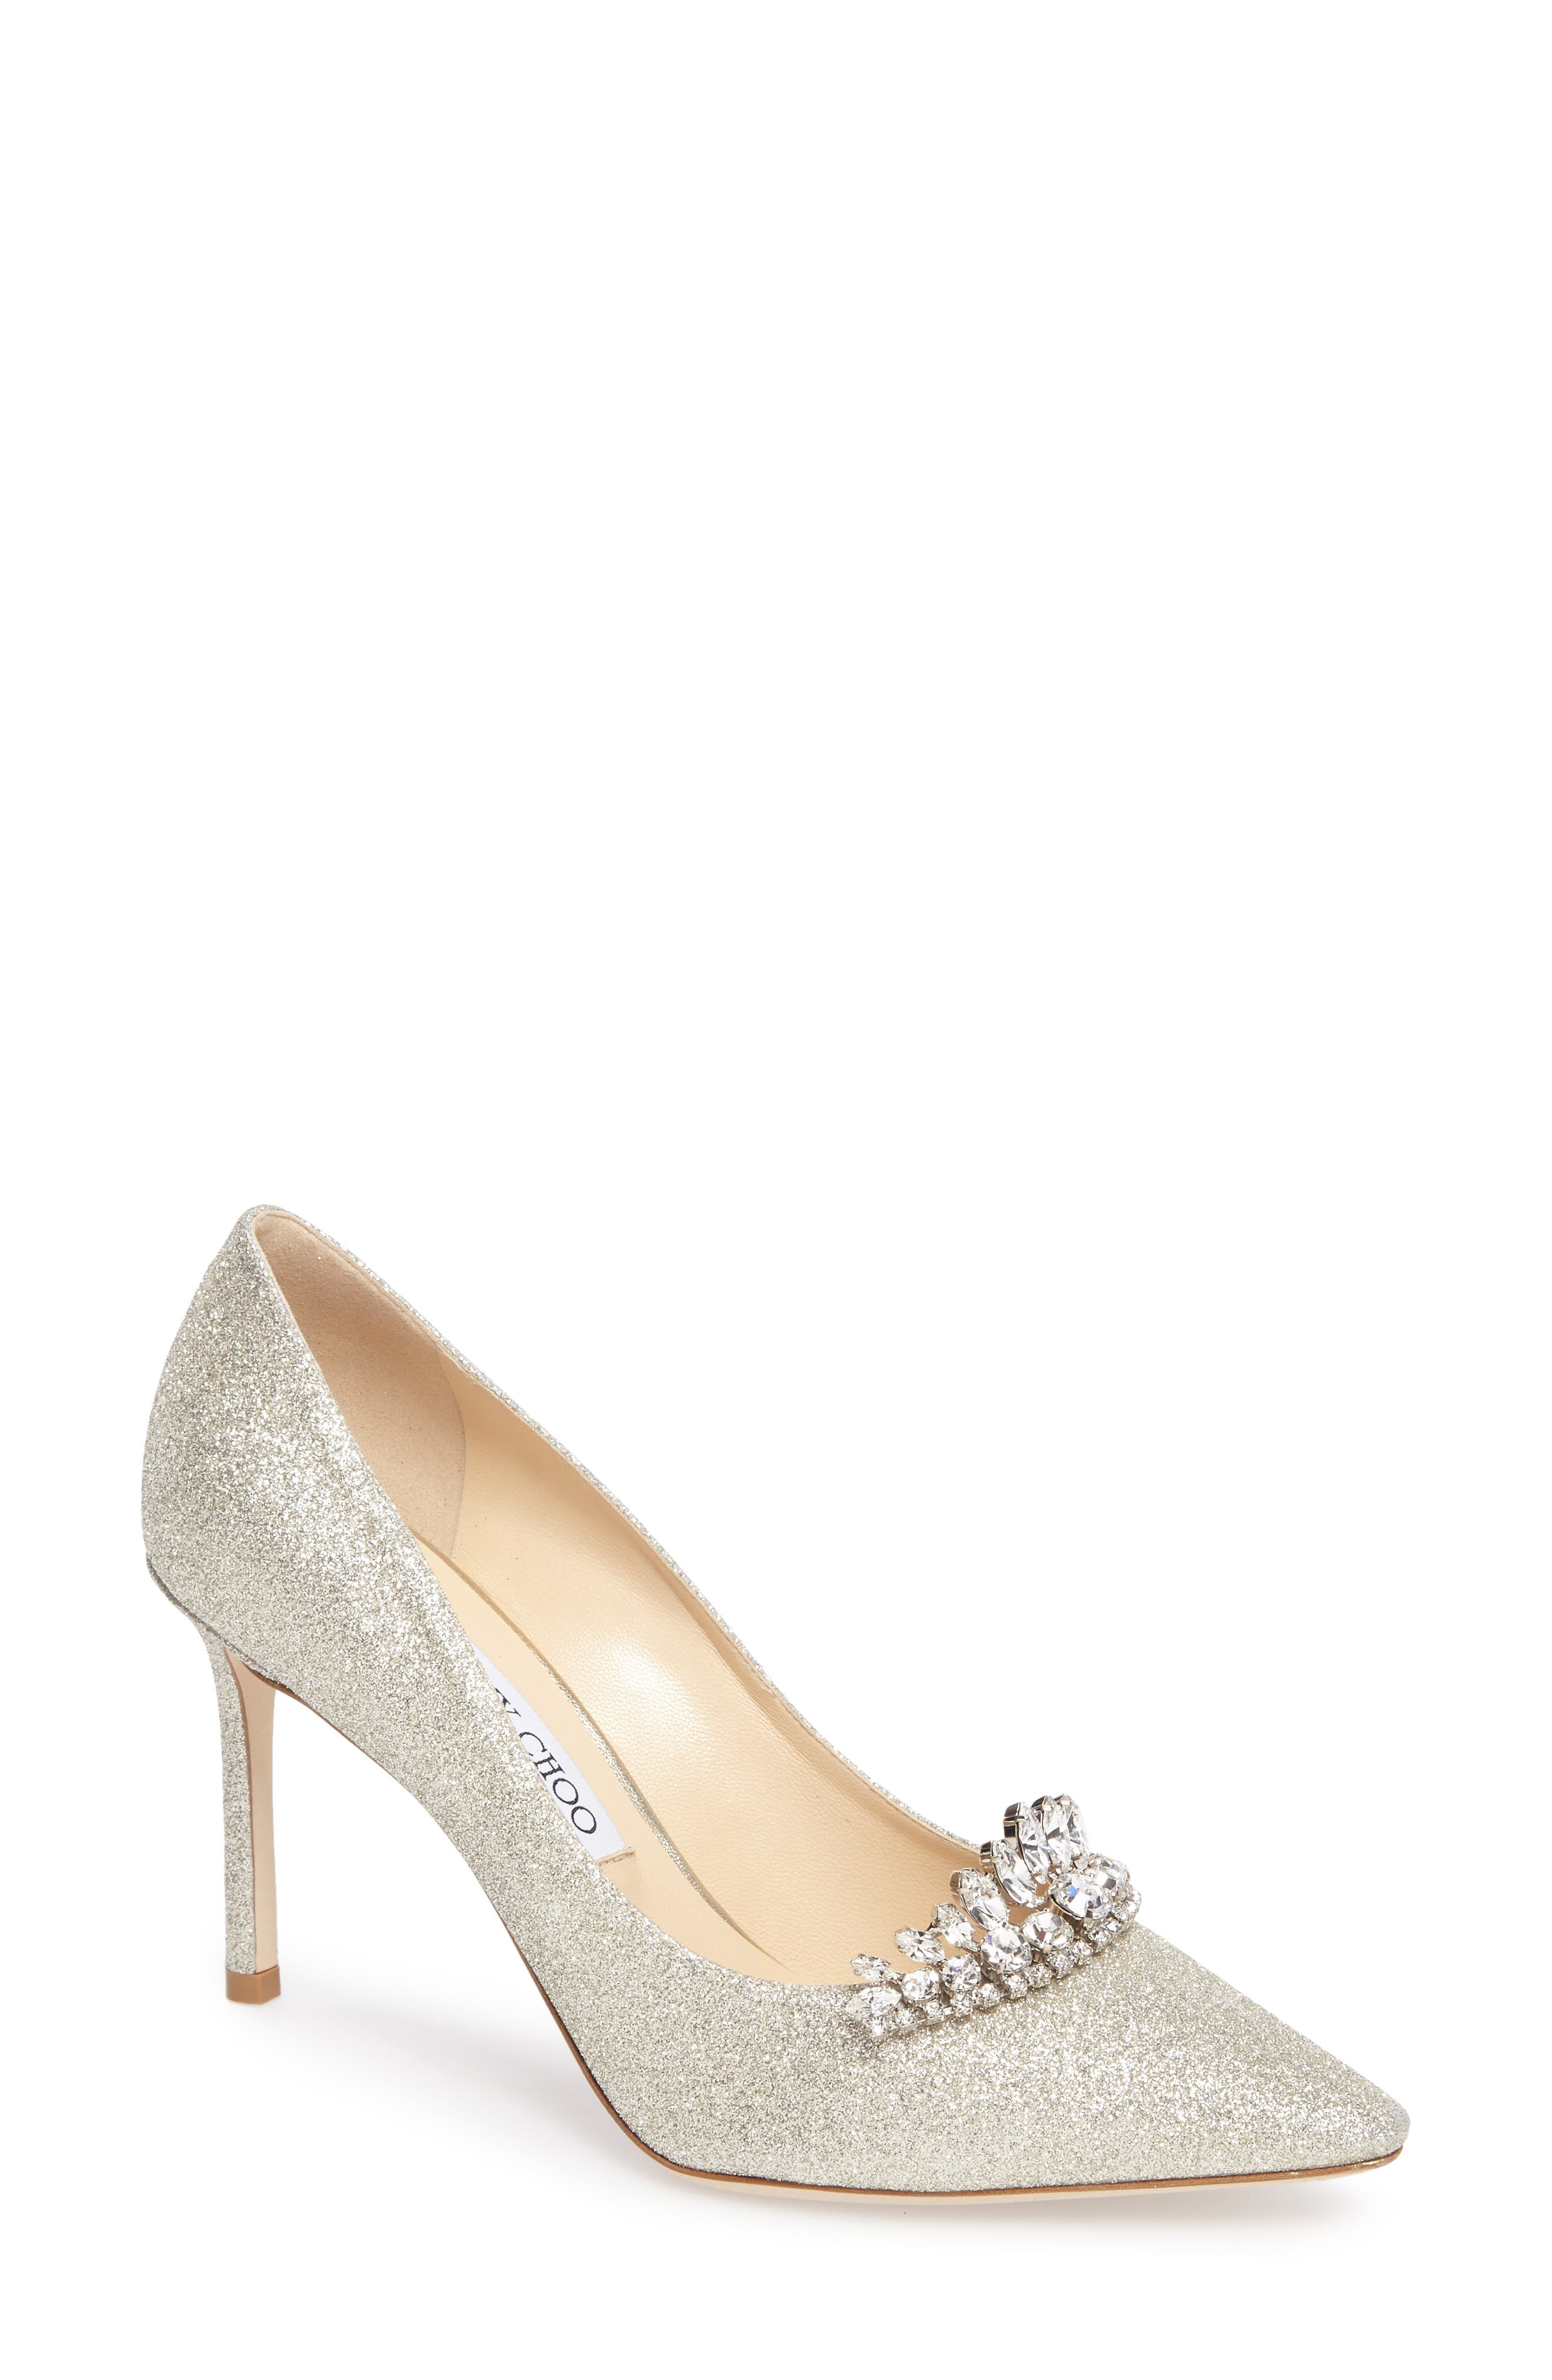 Romy Crystal Embellished Pump,                         Main,                         color, Platinum Ice/ Crystal